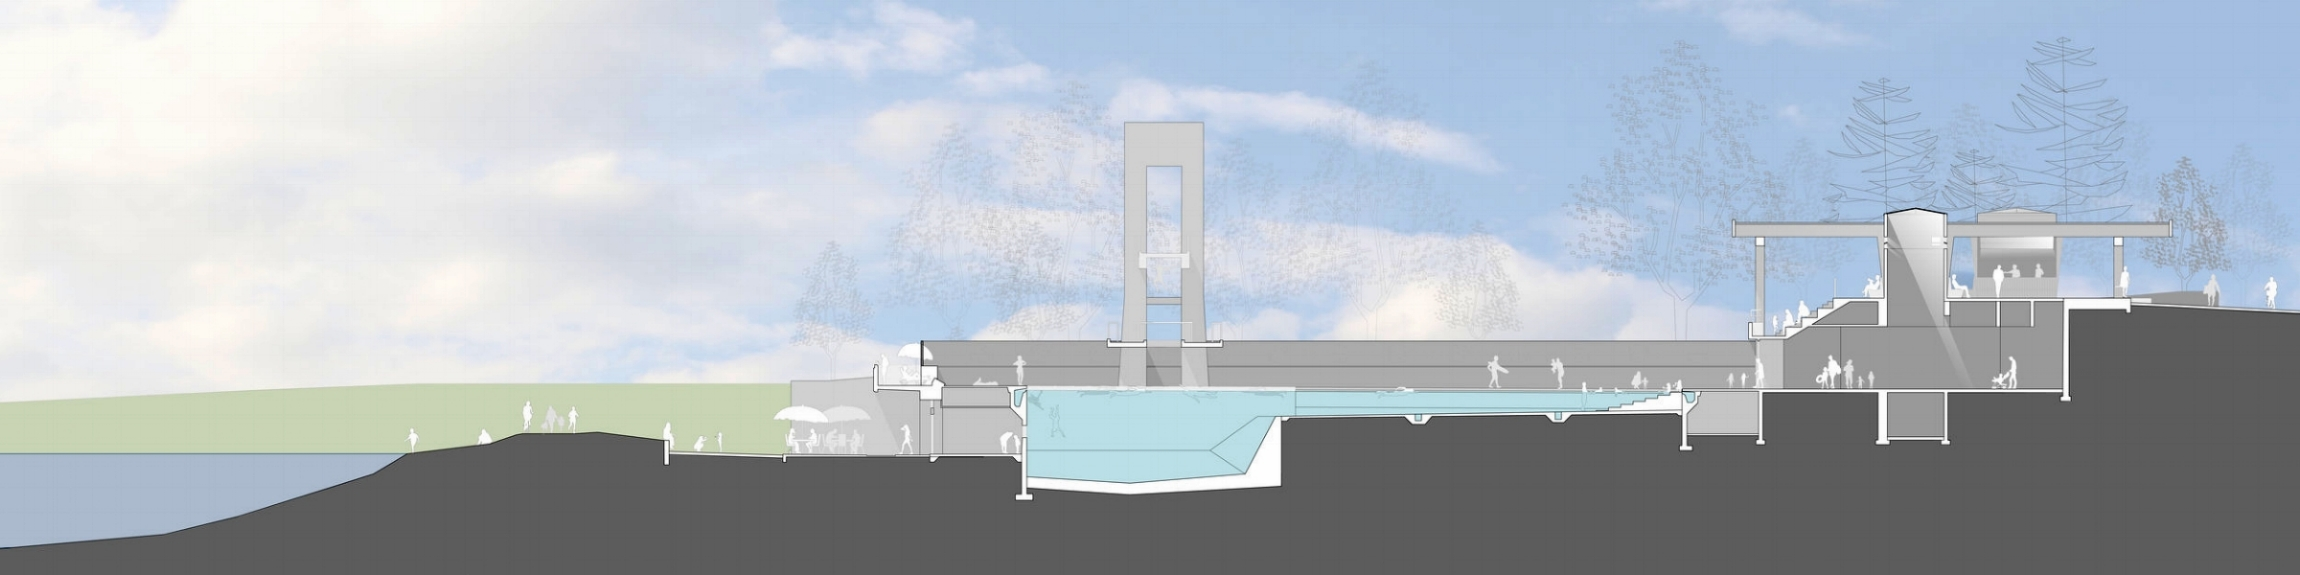 2nd Iteration: Outdoor Swimming Pool